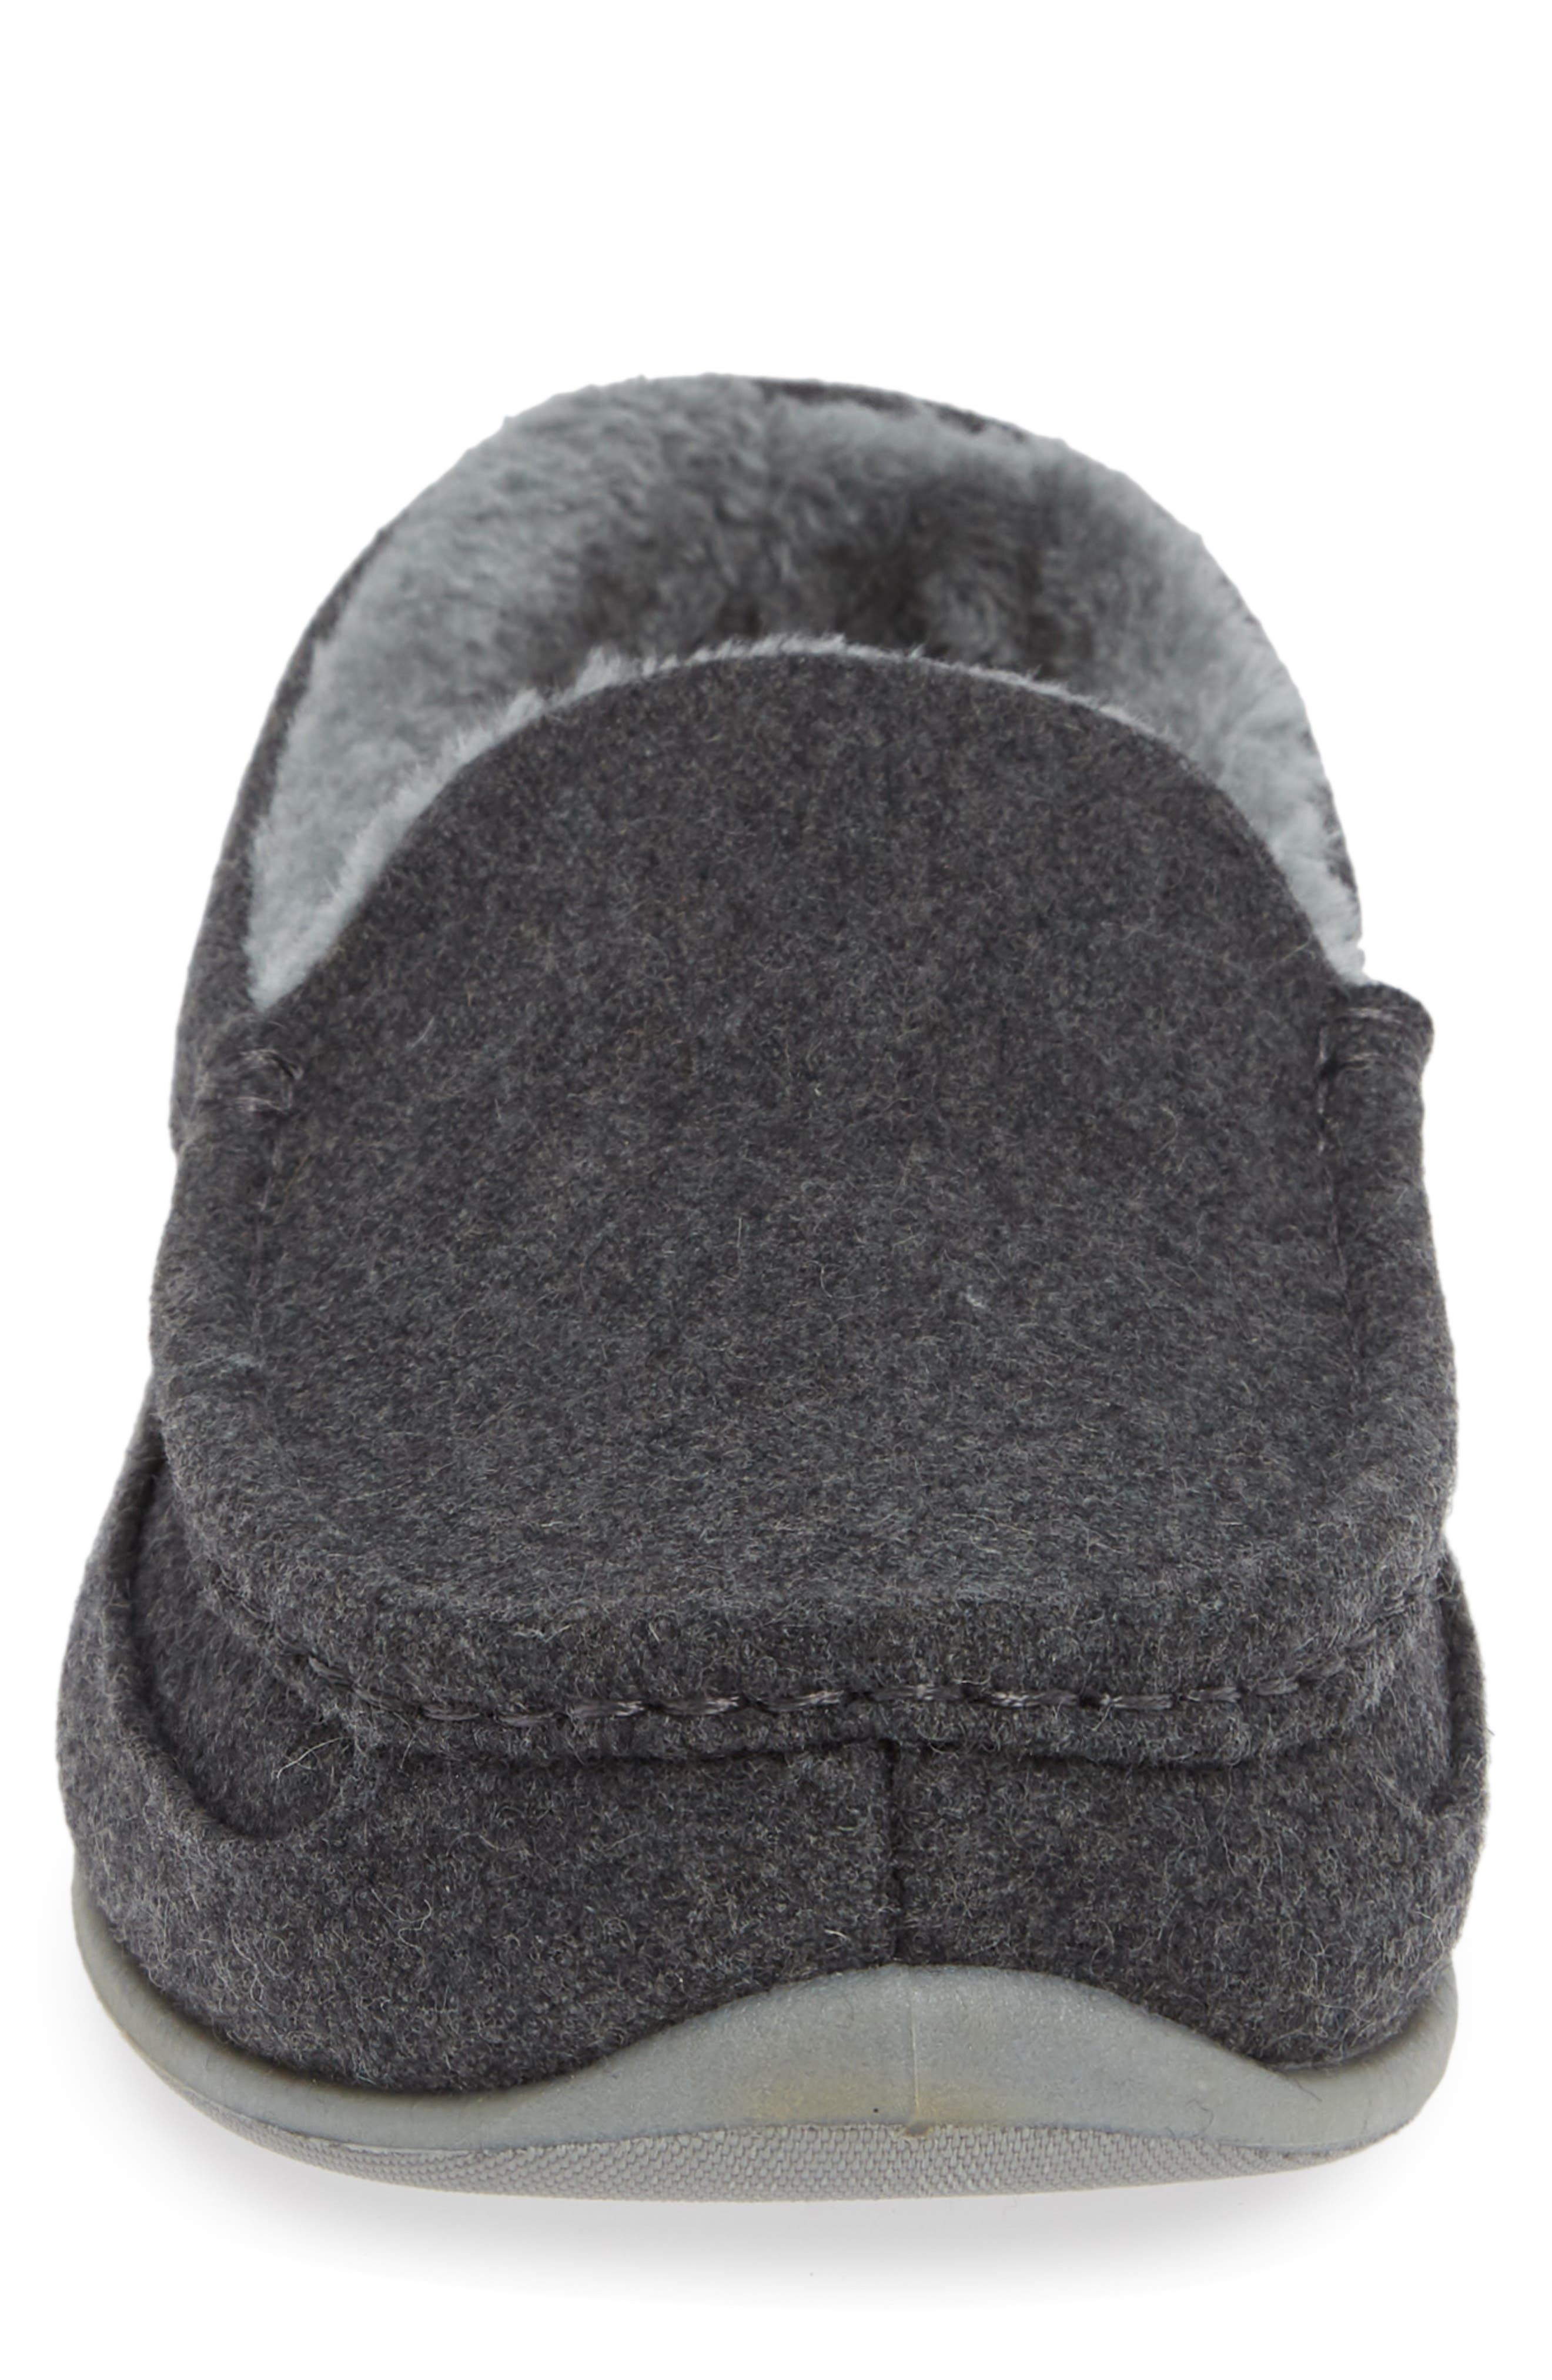 Spun Slipper,                             Alternate thumbnail 4, color,                             DARK GREY